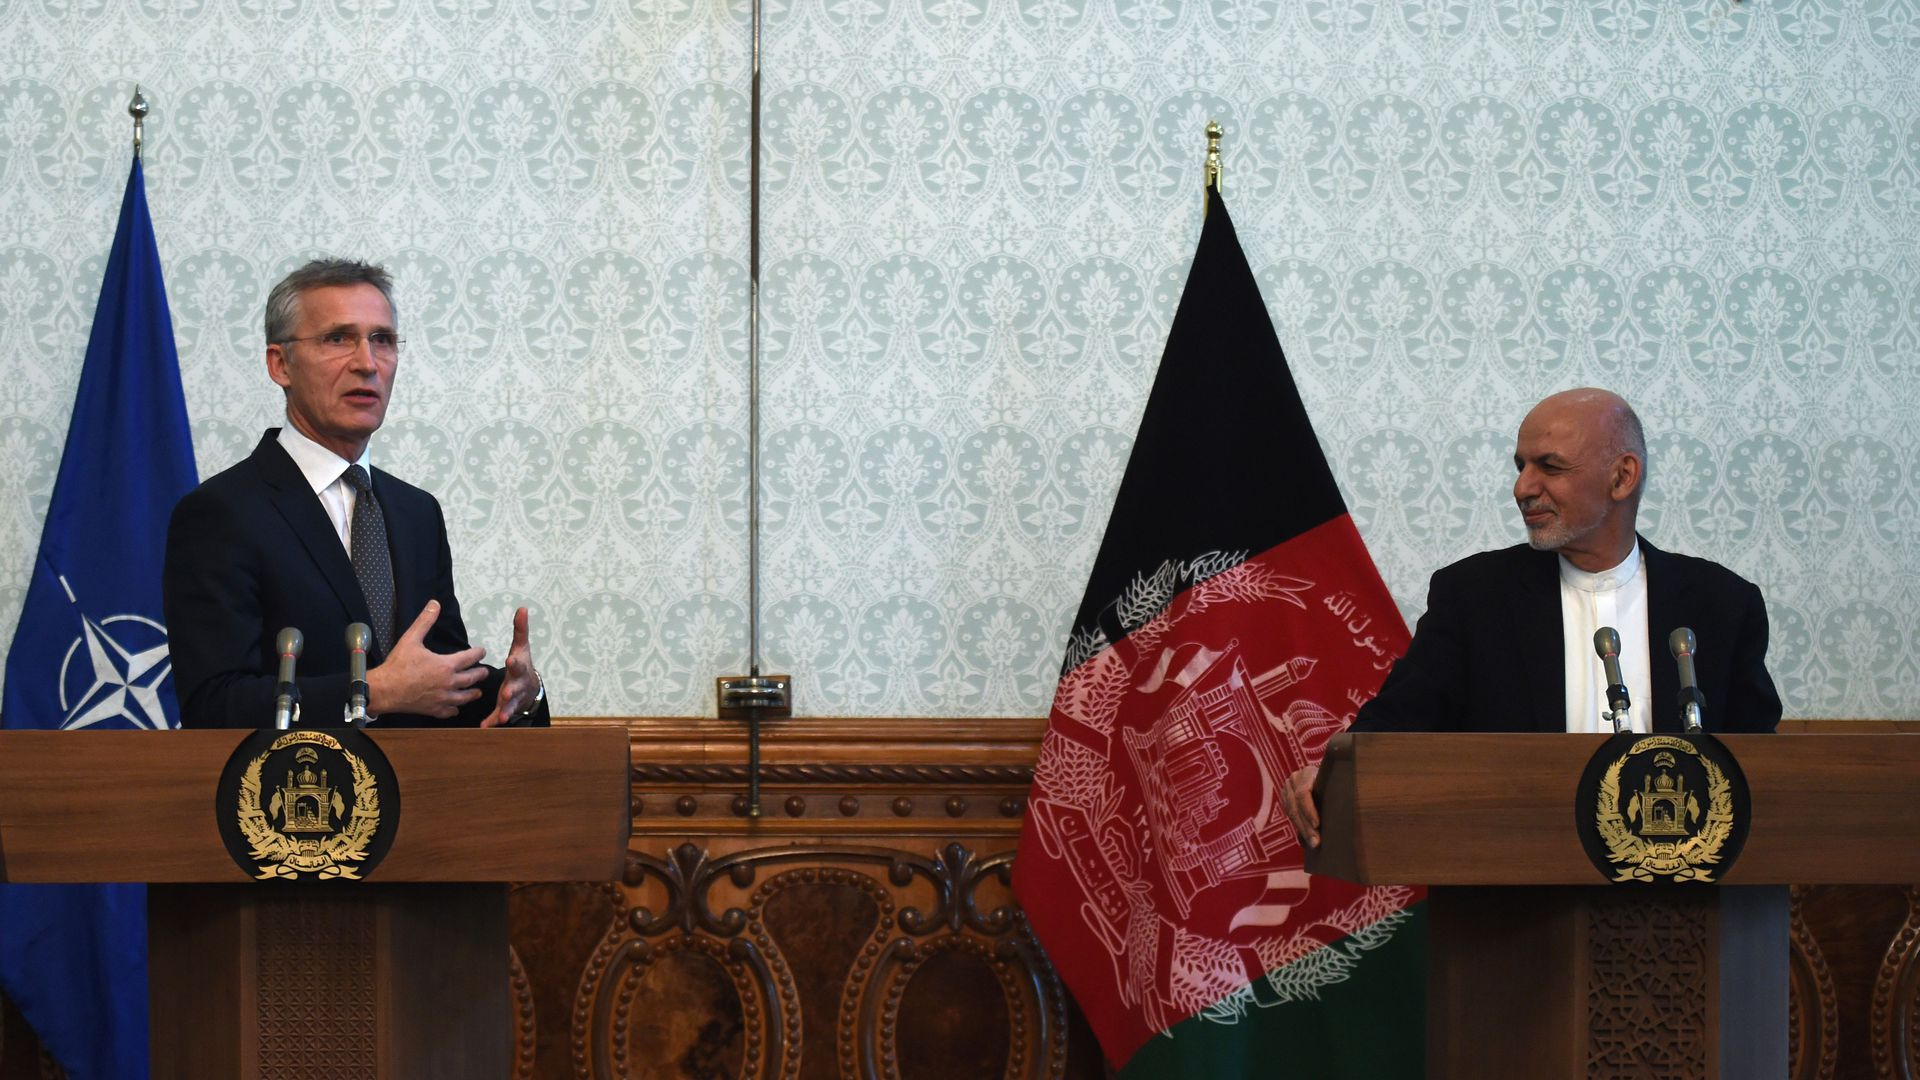 Secretary General of North Atlantic Treaty Organization (NATO) Jens Stoltenberg (L) gestures as speaks during a joint press conference with Afghan President Ashraf Ghani